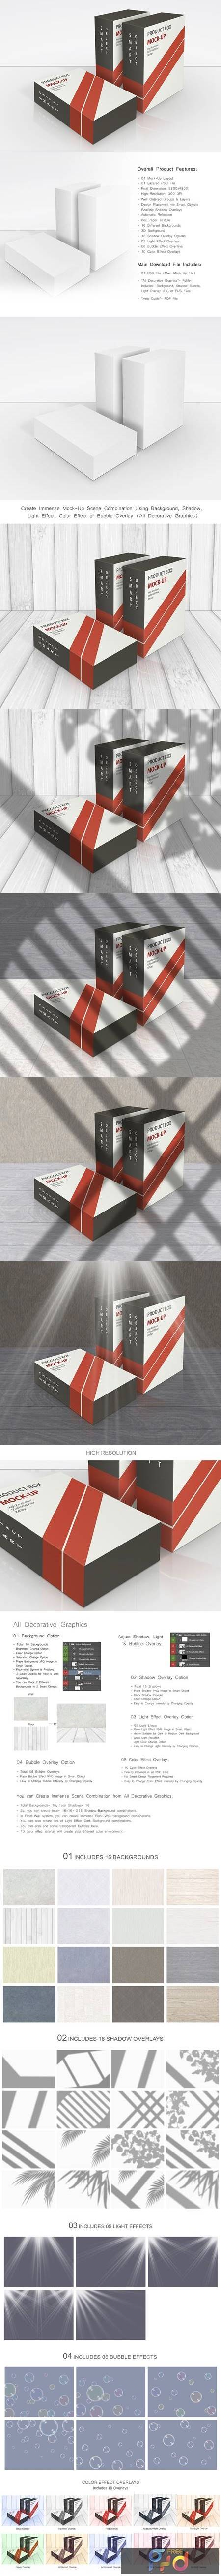 Product Box Mock-Up 06 5591840 1